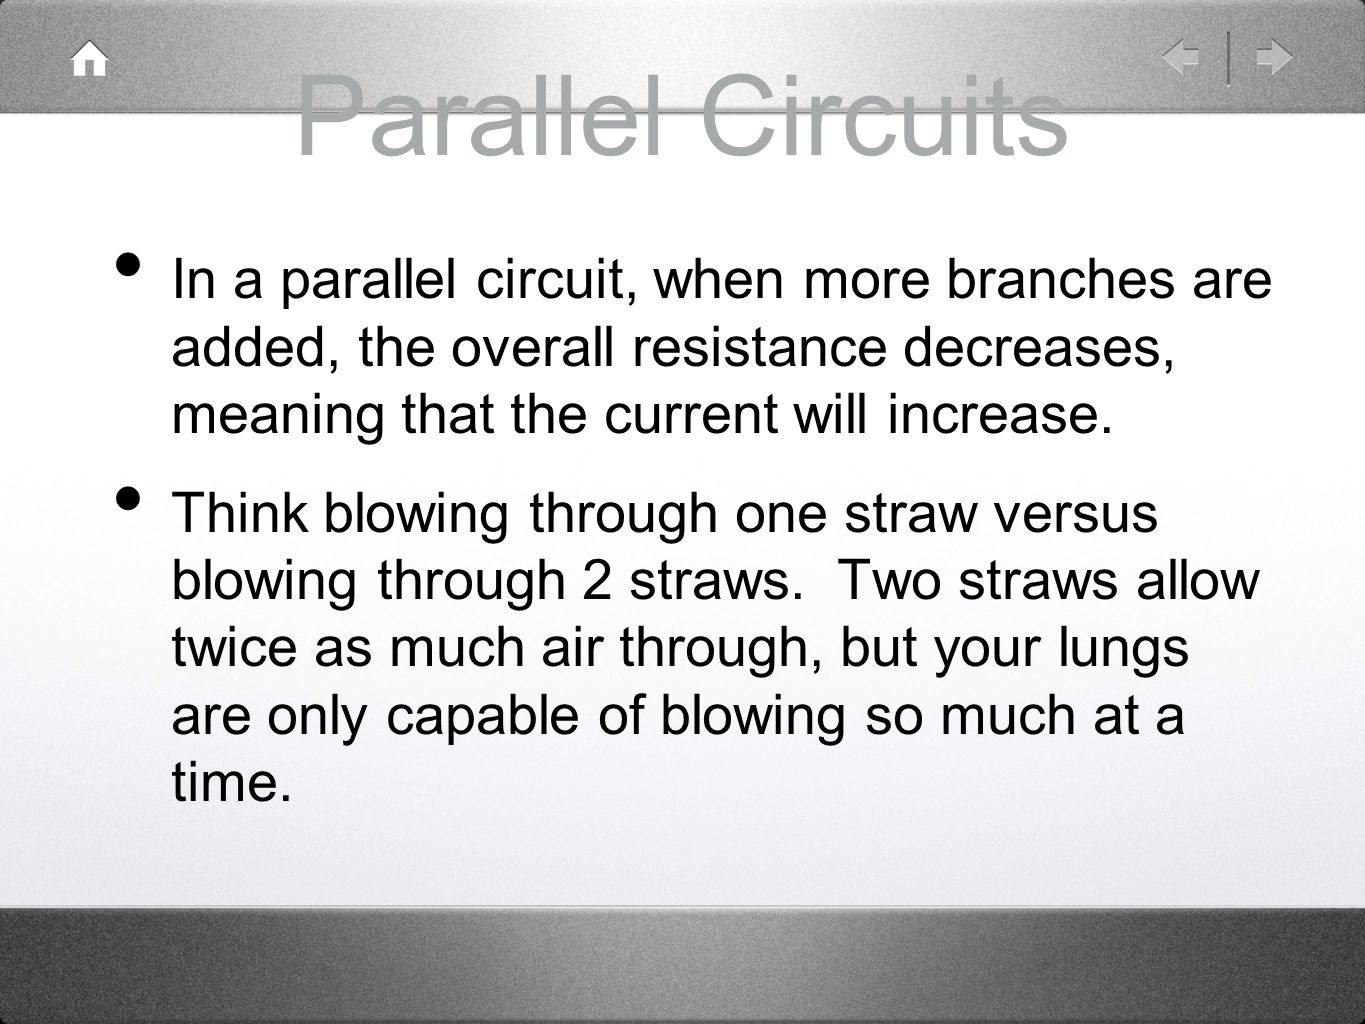 Parallel Circuits In a parallel circuit, when more branches are added, the overall resistance decreases, meaning that the current will increase.